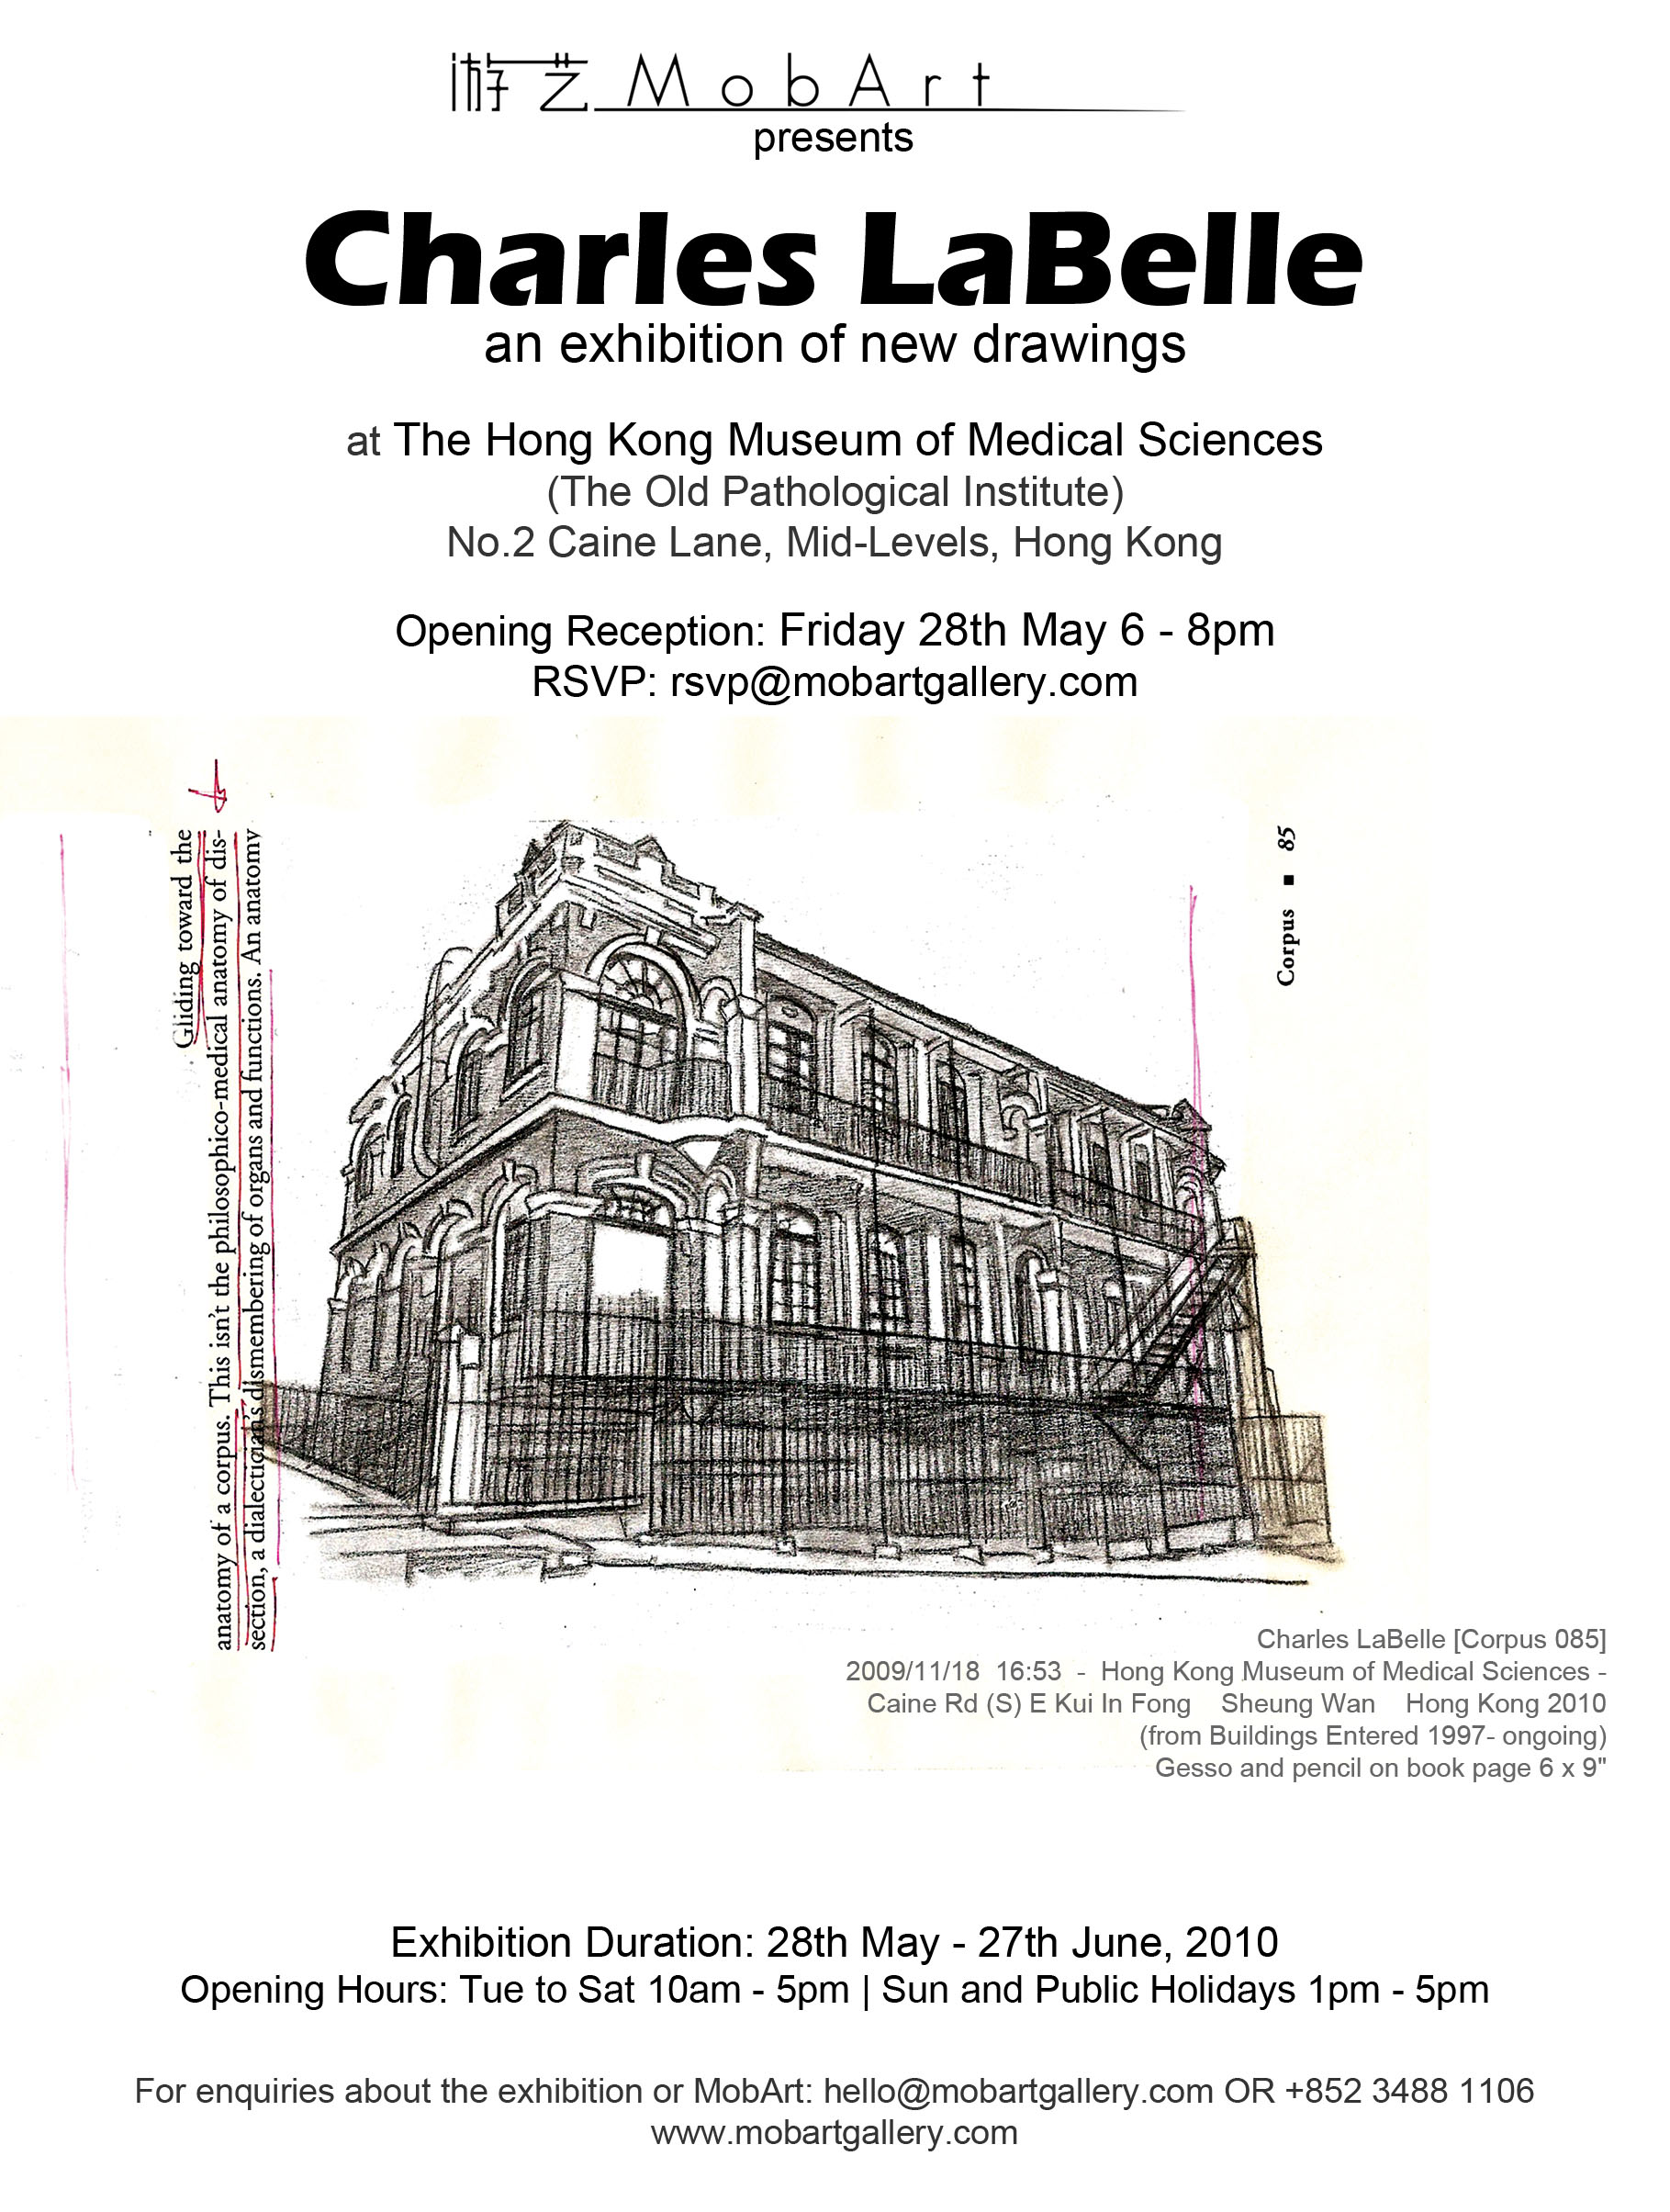 Solo Exhibition of New Drawings by Charles LaBelle